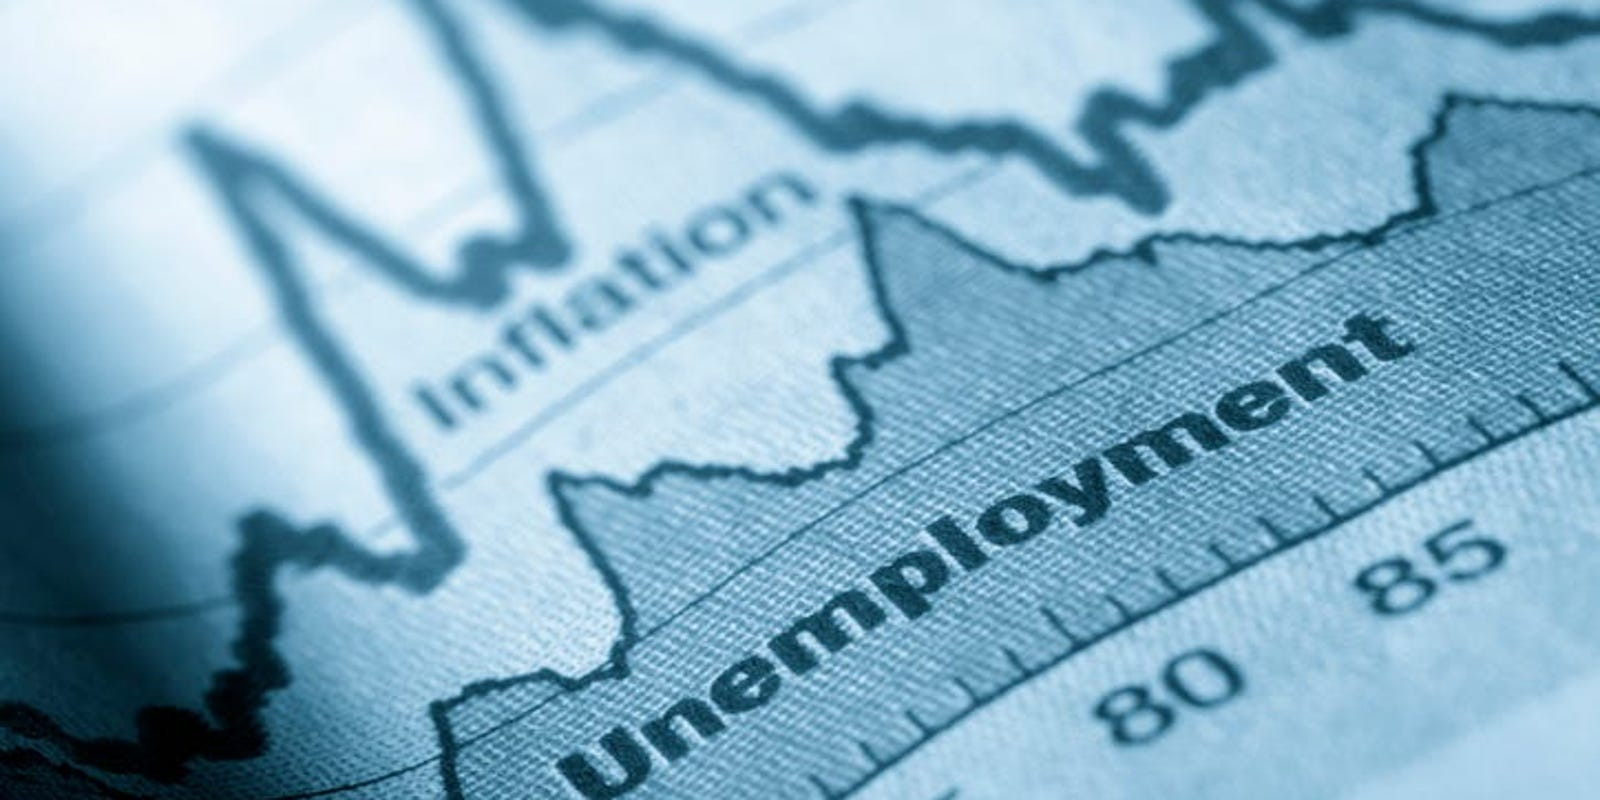 Michigan weekly unemployment claims increased last week